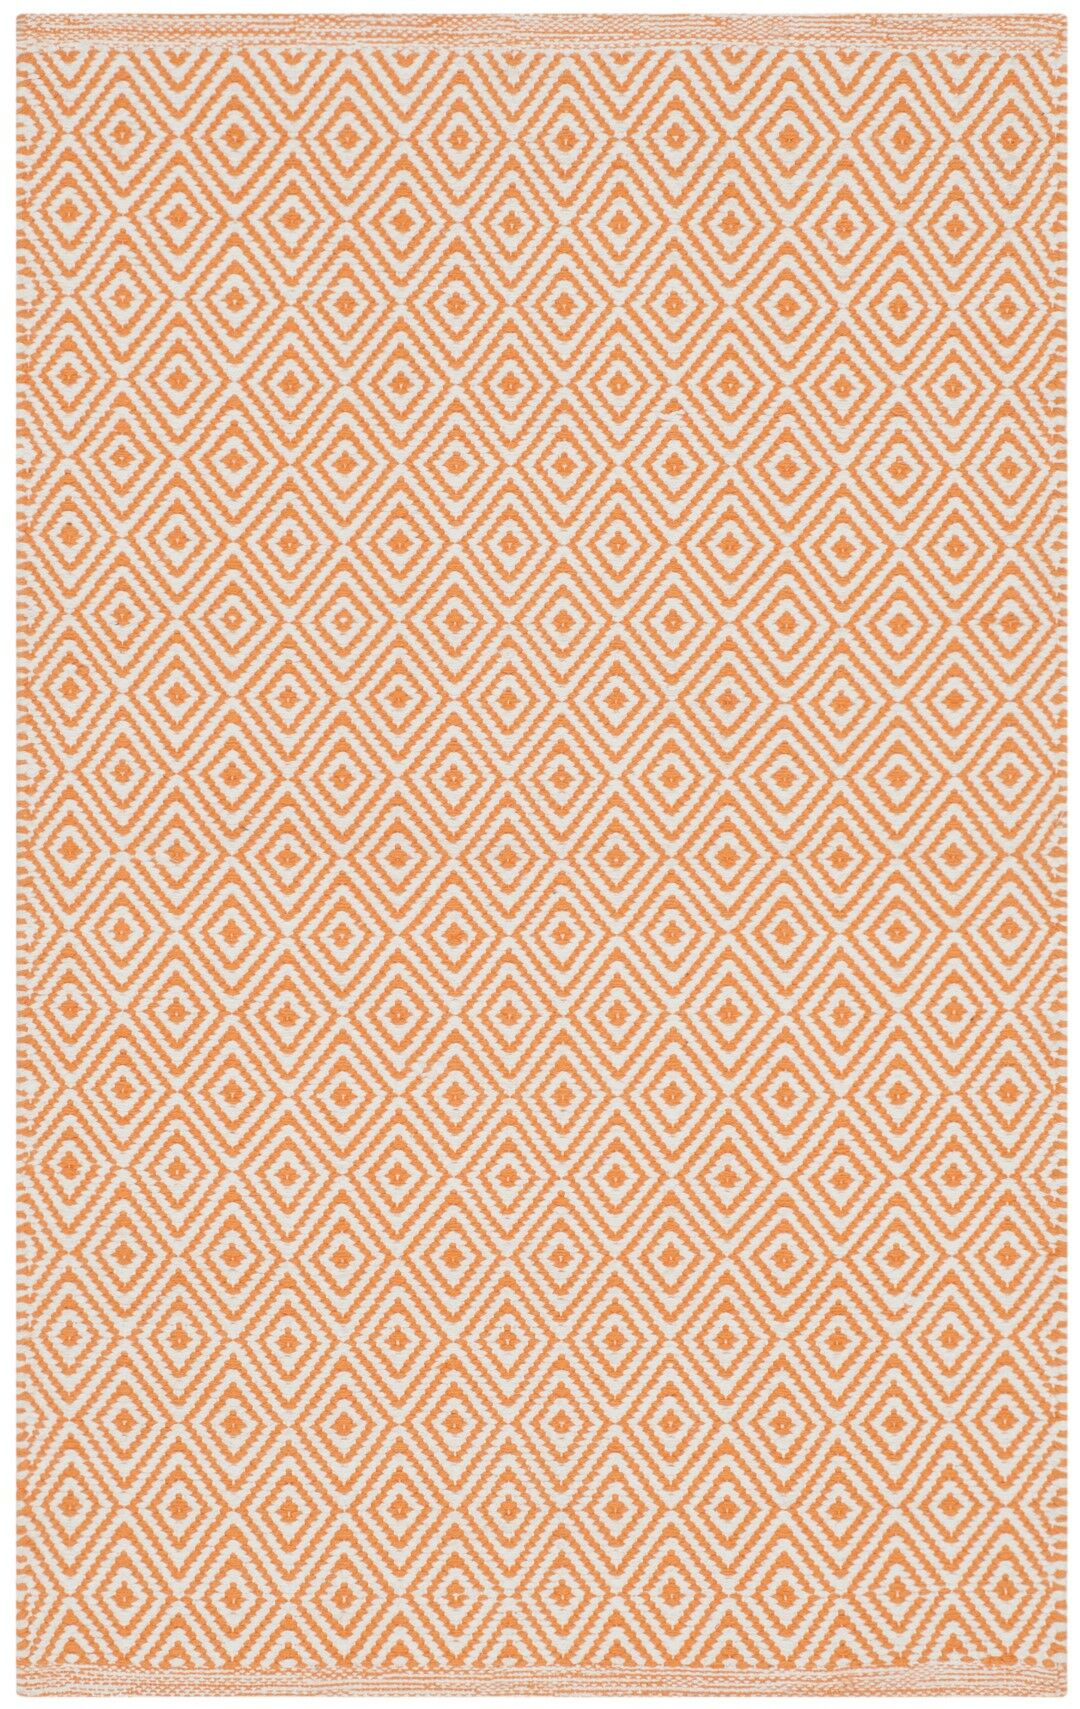 Sessums Hand-Woven Ivory/Rust Area Rug Rug Size: Round 6'